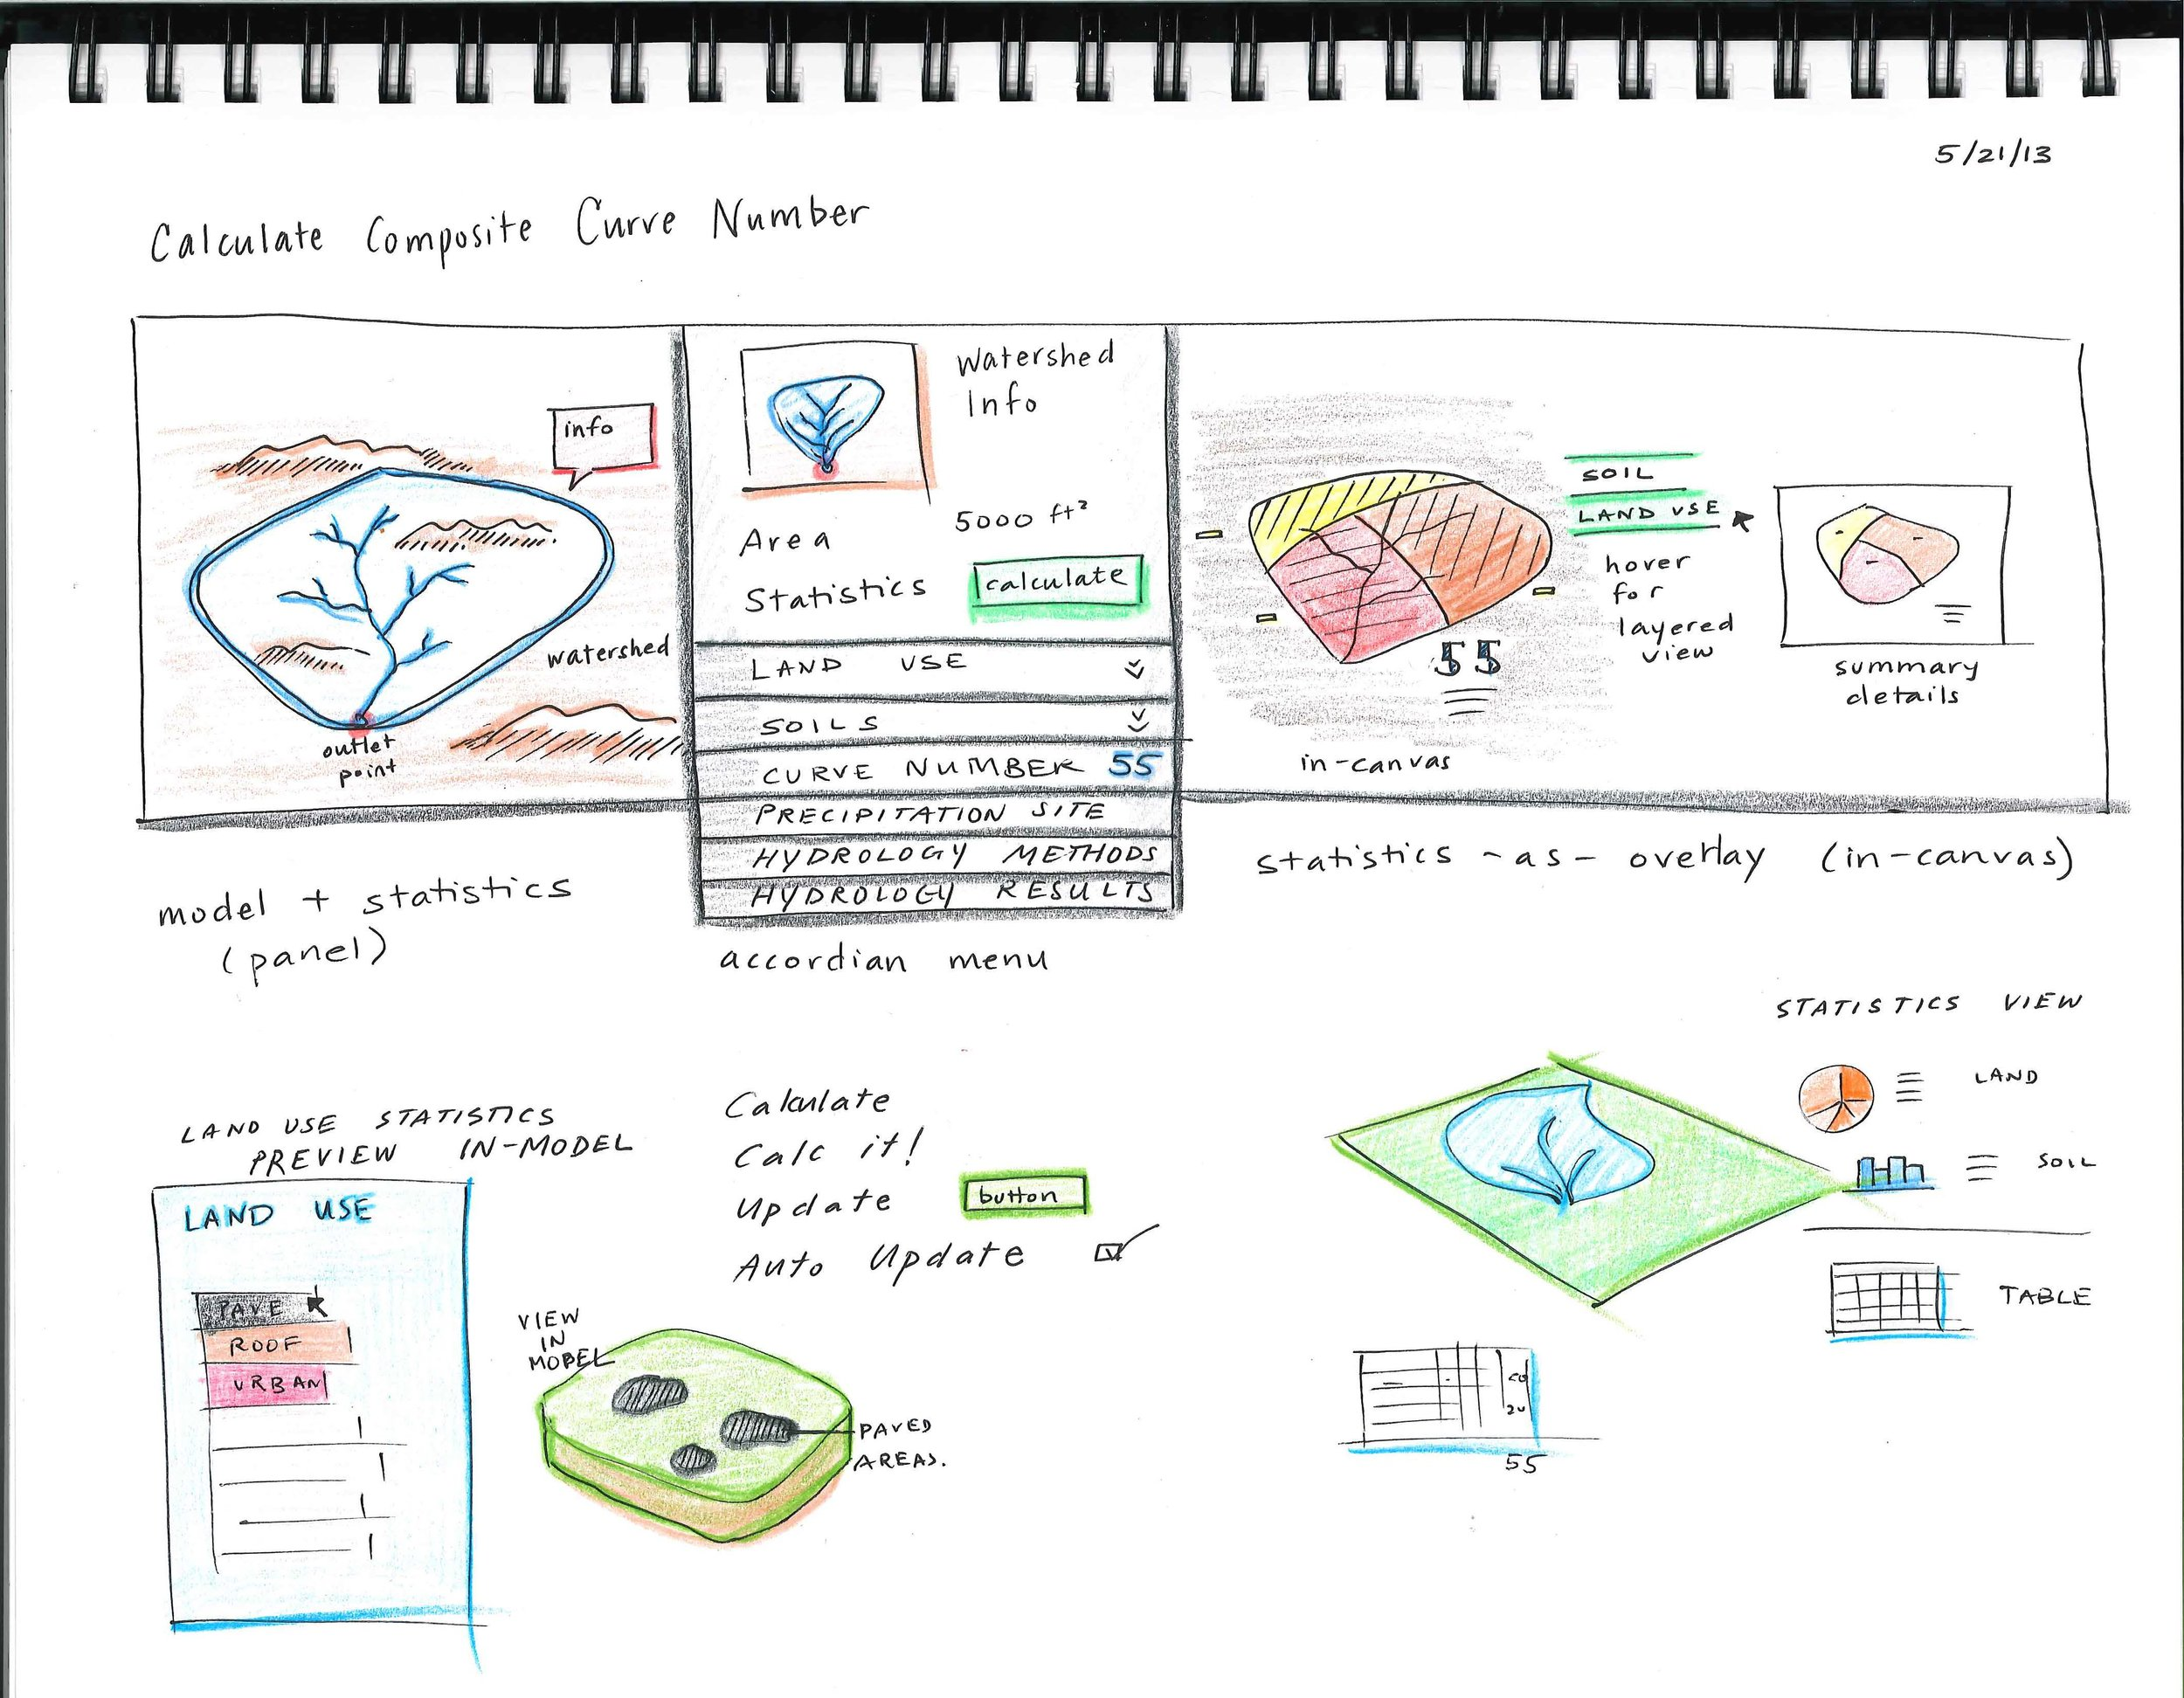 Sketches of the object card pattern and how it might display data with the model.